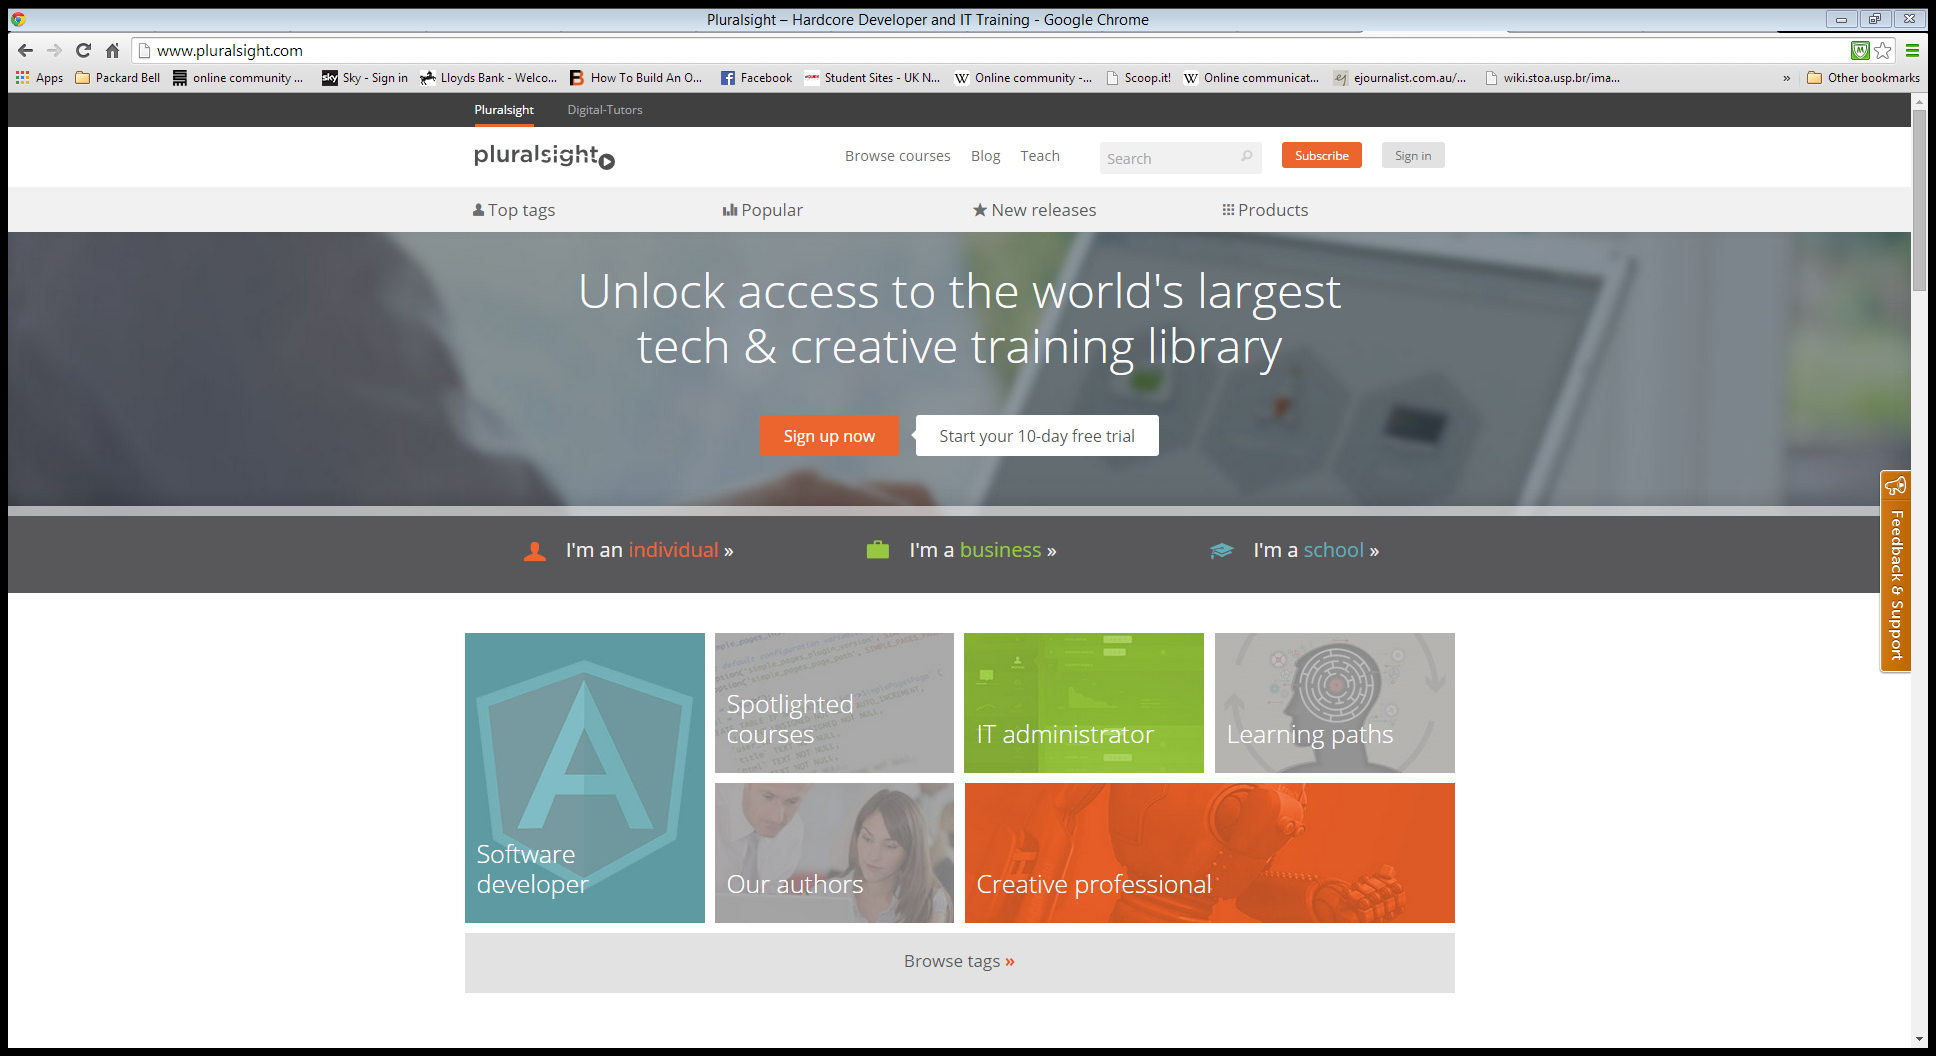 pluralsight mooclab connecting people to online learning